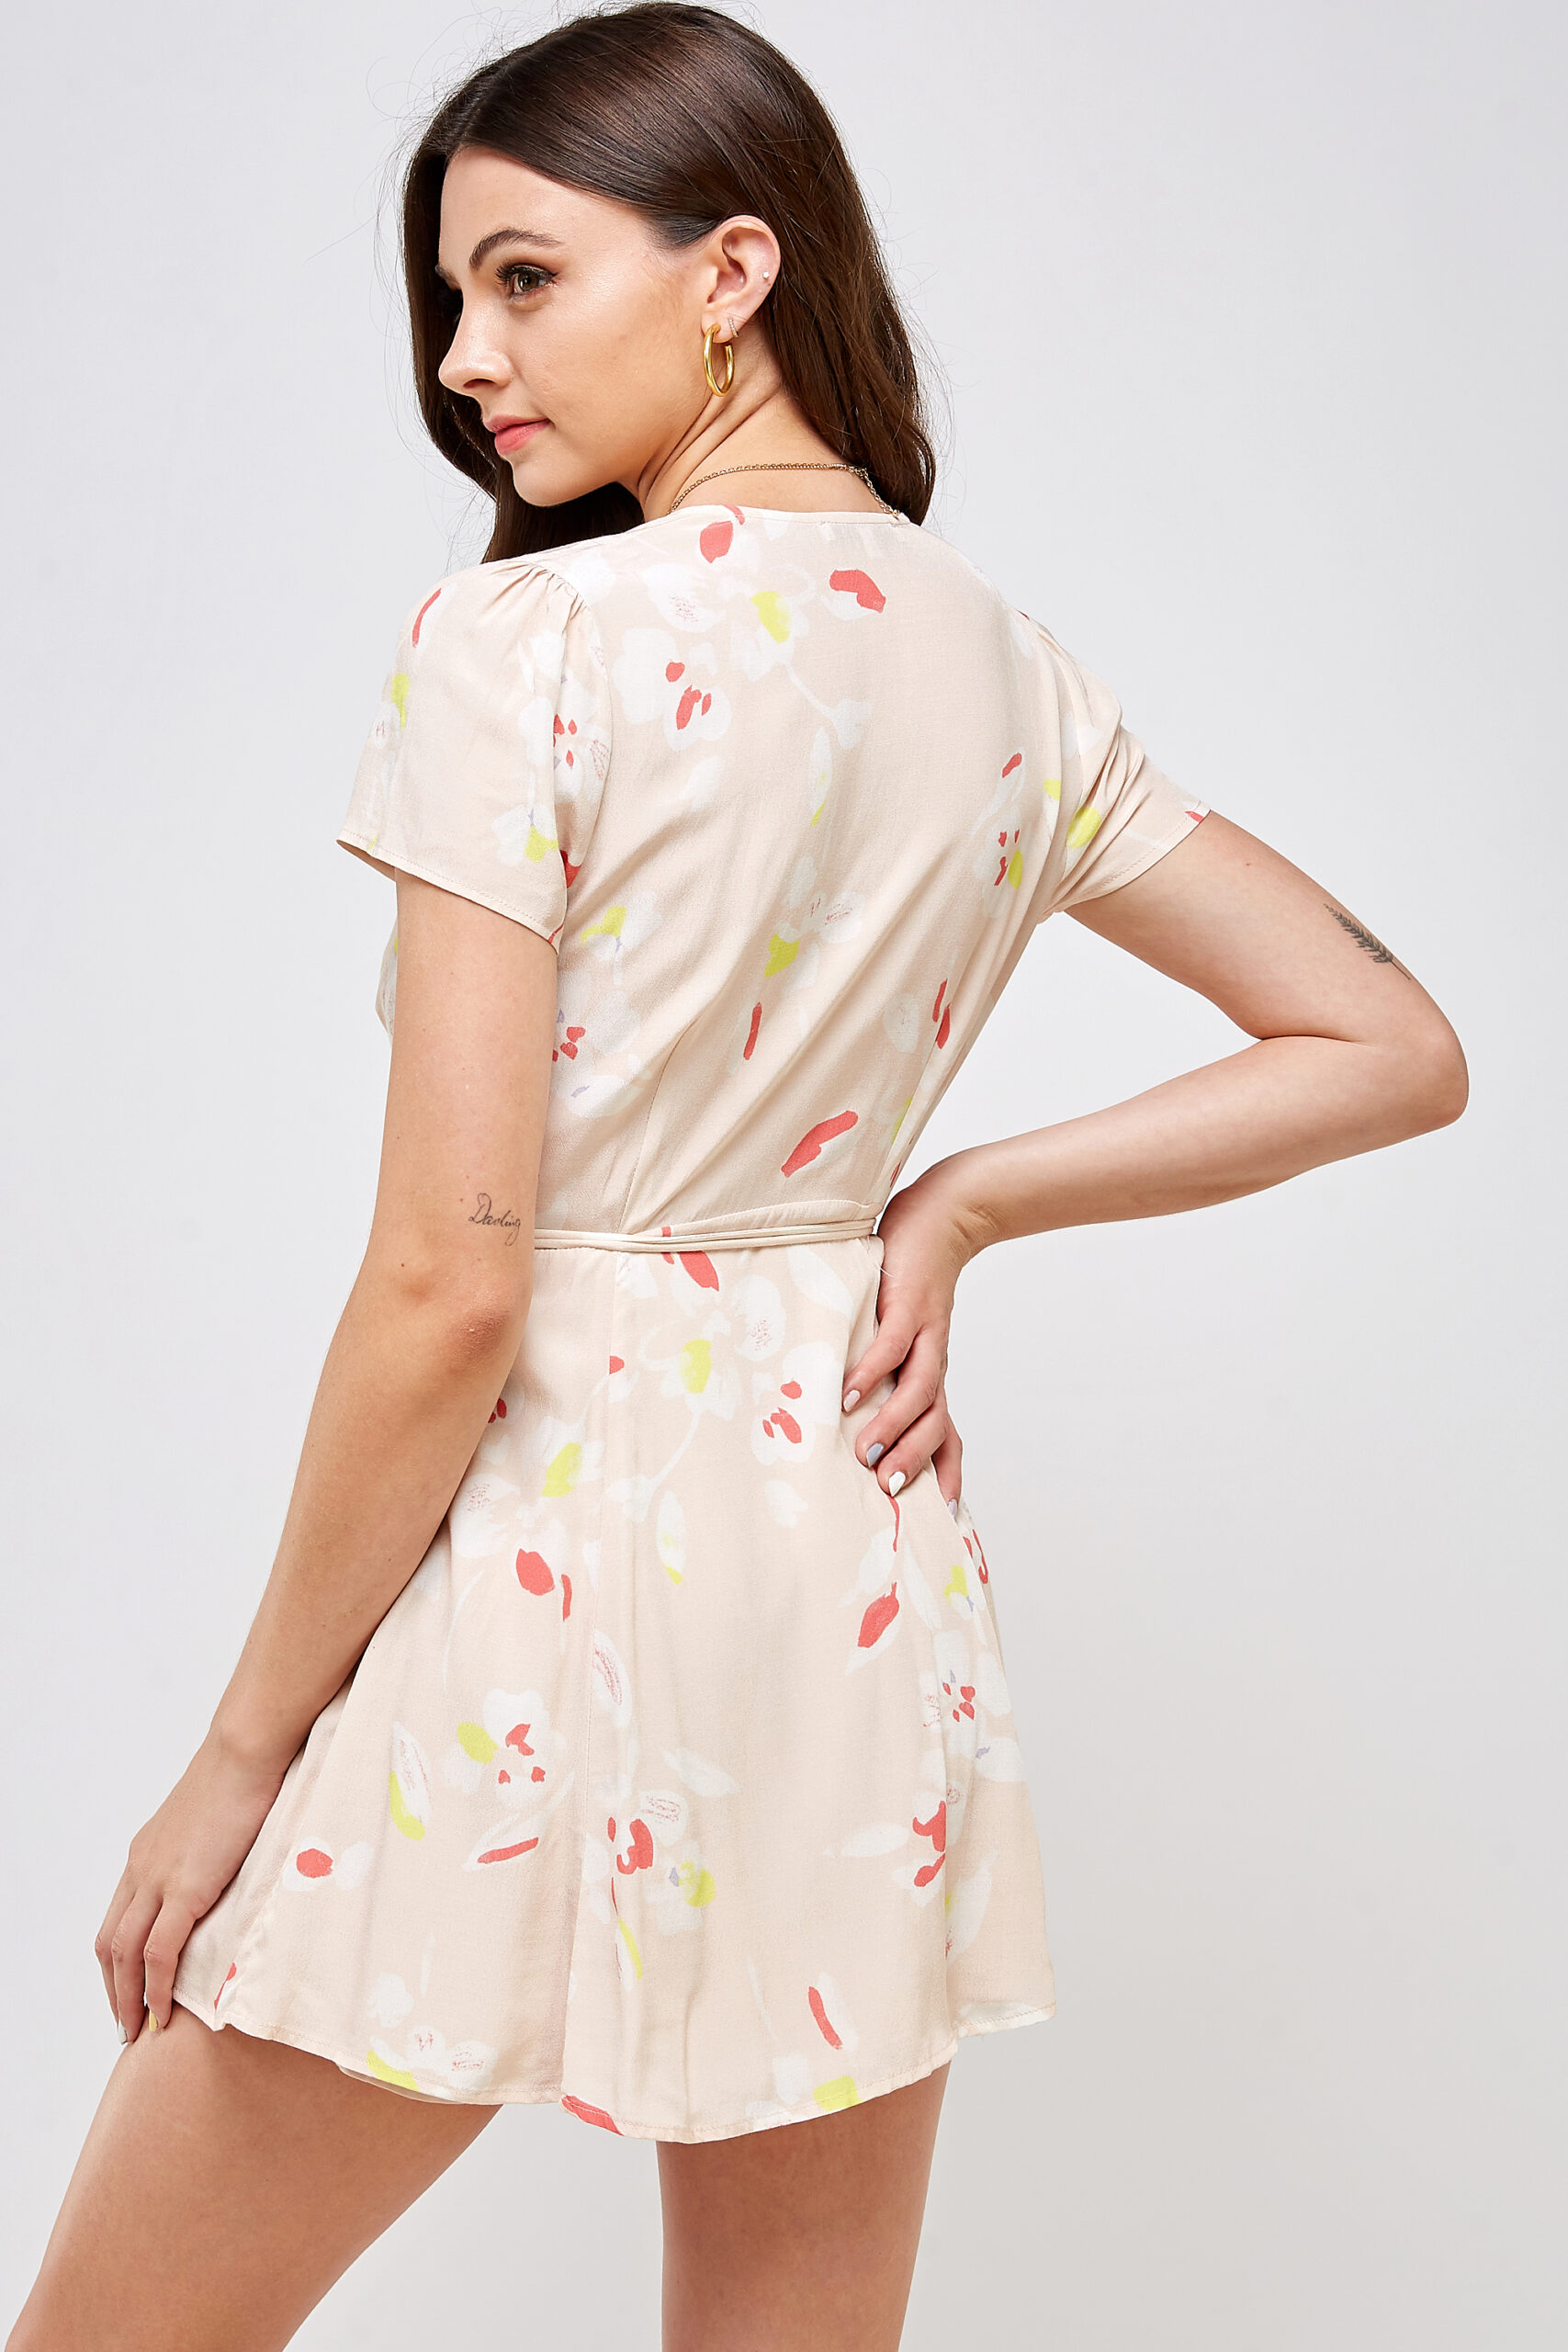 100% Rayon V-neck Belted Waist 3/4 Back View